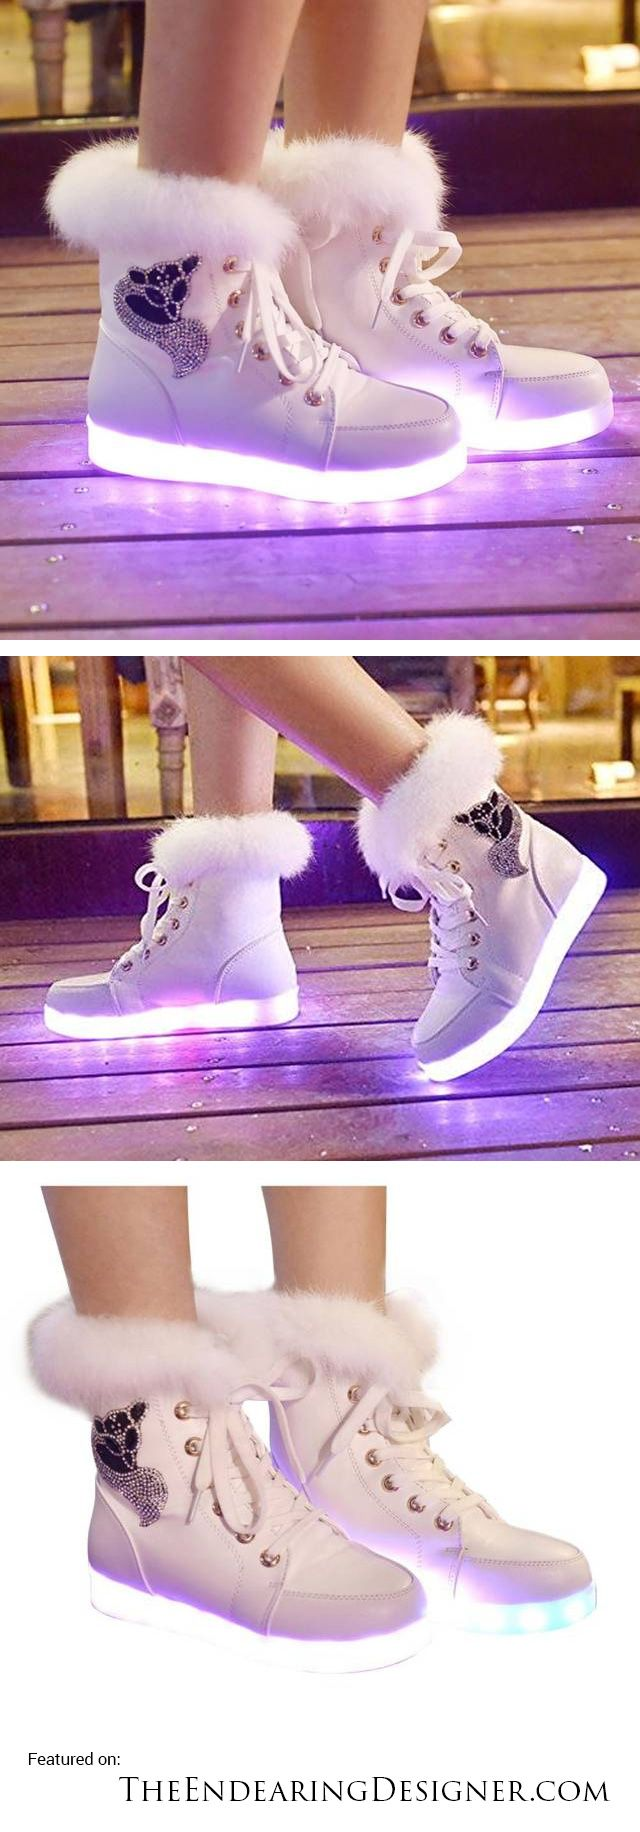 Furry Warm Winter Boots That Light Up // 10 LED Shoes That Light Up At The Bottom And Change Colors Like Crazy [http://theendearingdesigner.com/10-led-shoes-that-light-up-at-the-bottom-and-change-colors-men-women/]